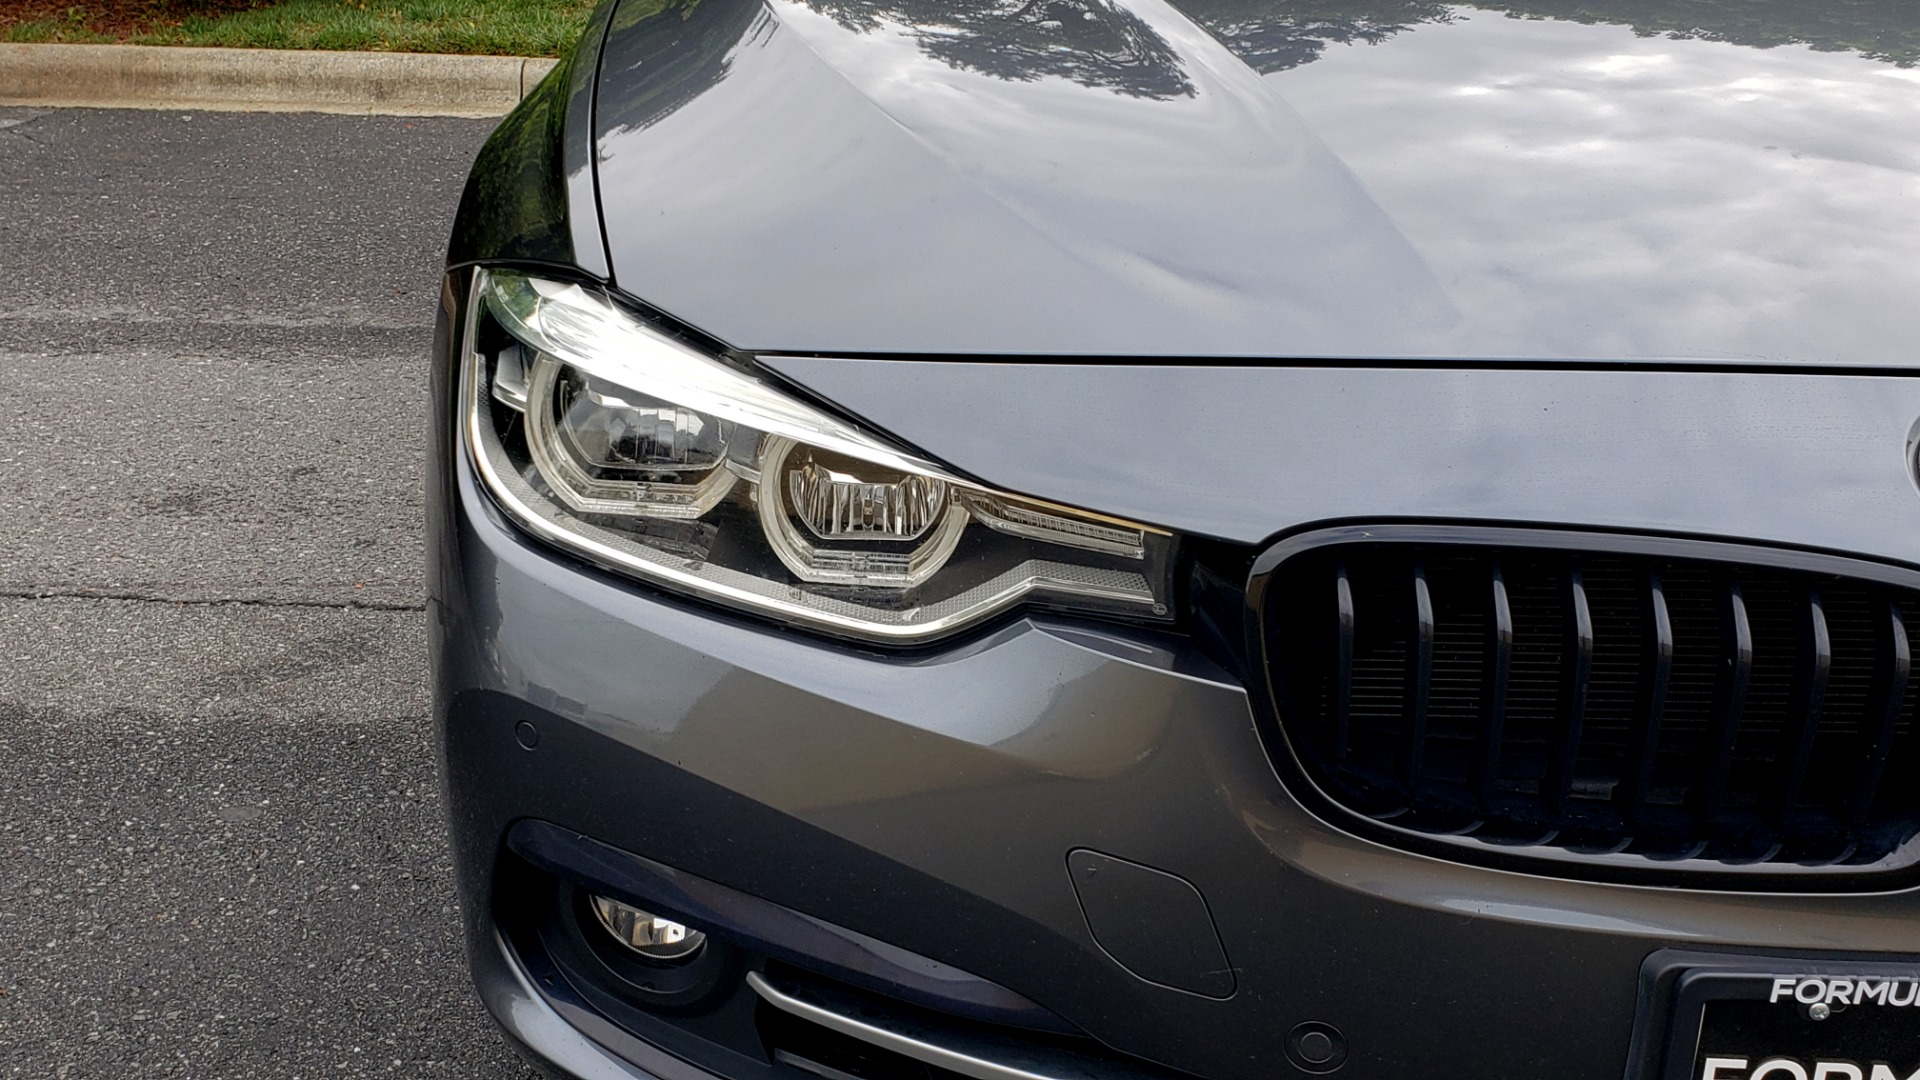 Used 2017 BMW 3 SERIES 340I XDRIVE SPORT / DRVR ASST PLUS / NAV / CLD WTHR / PARK ASST for sale Sold at Formula Imports in Charlotte NC 28227 18